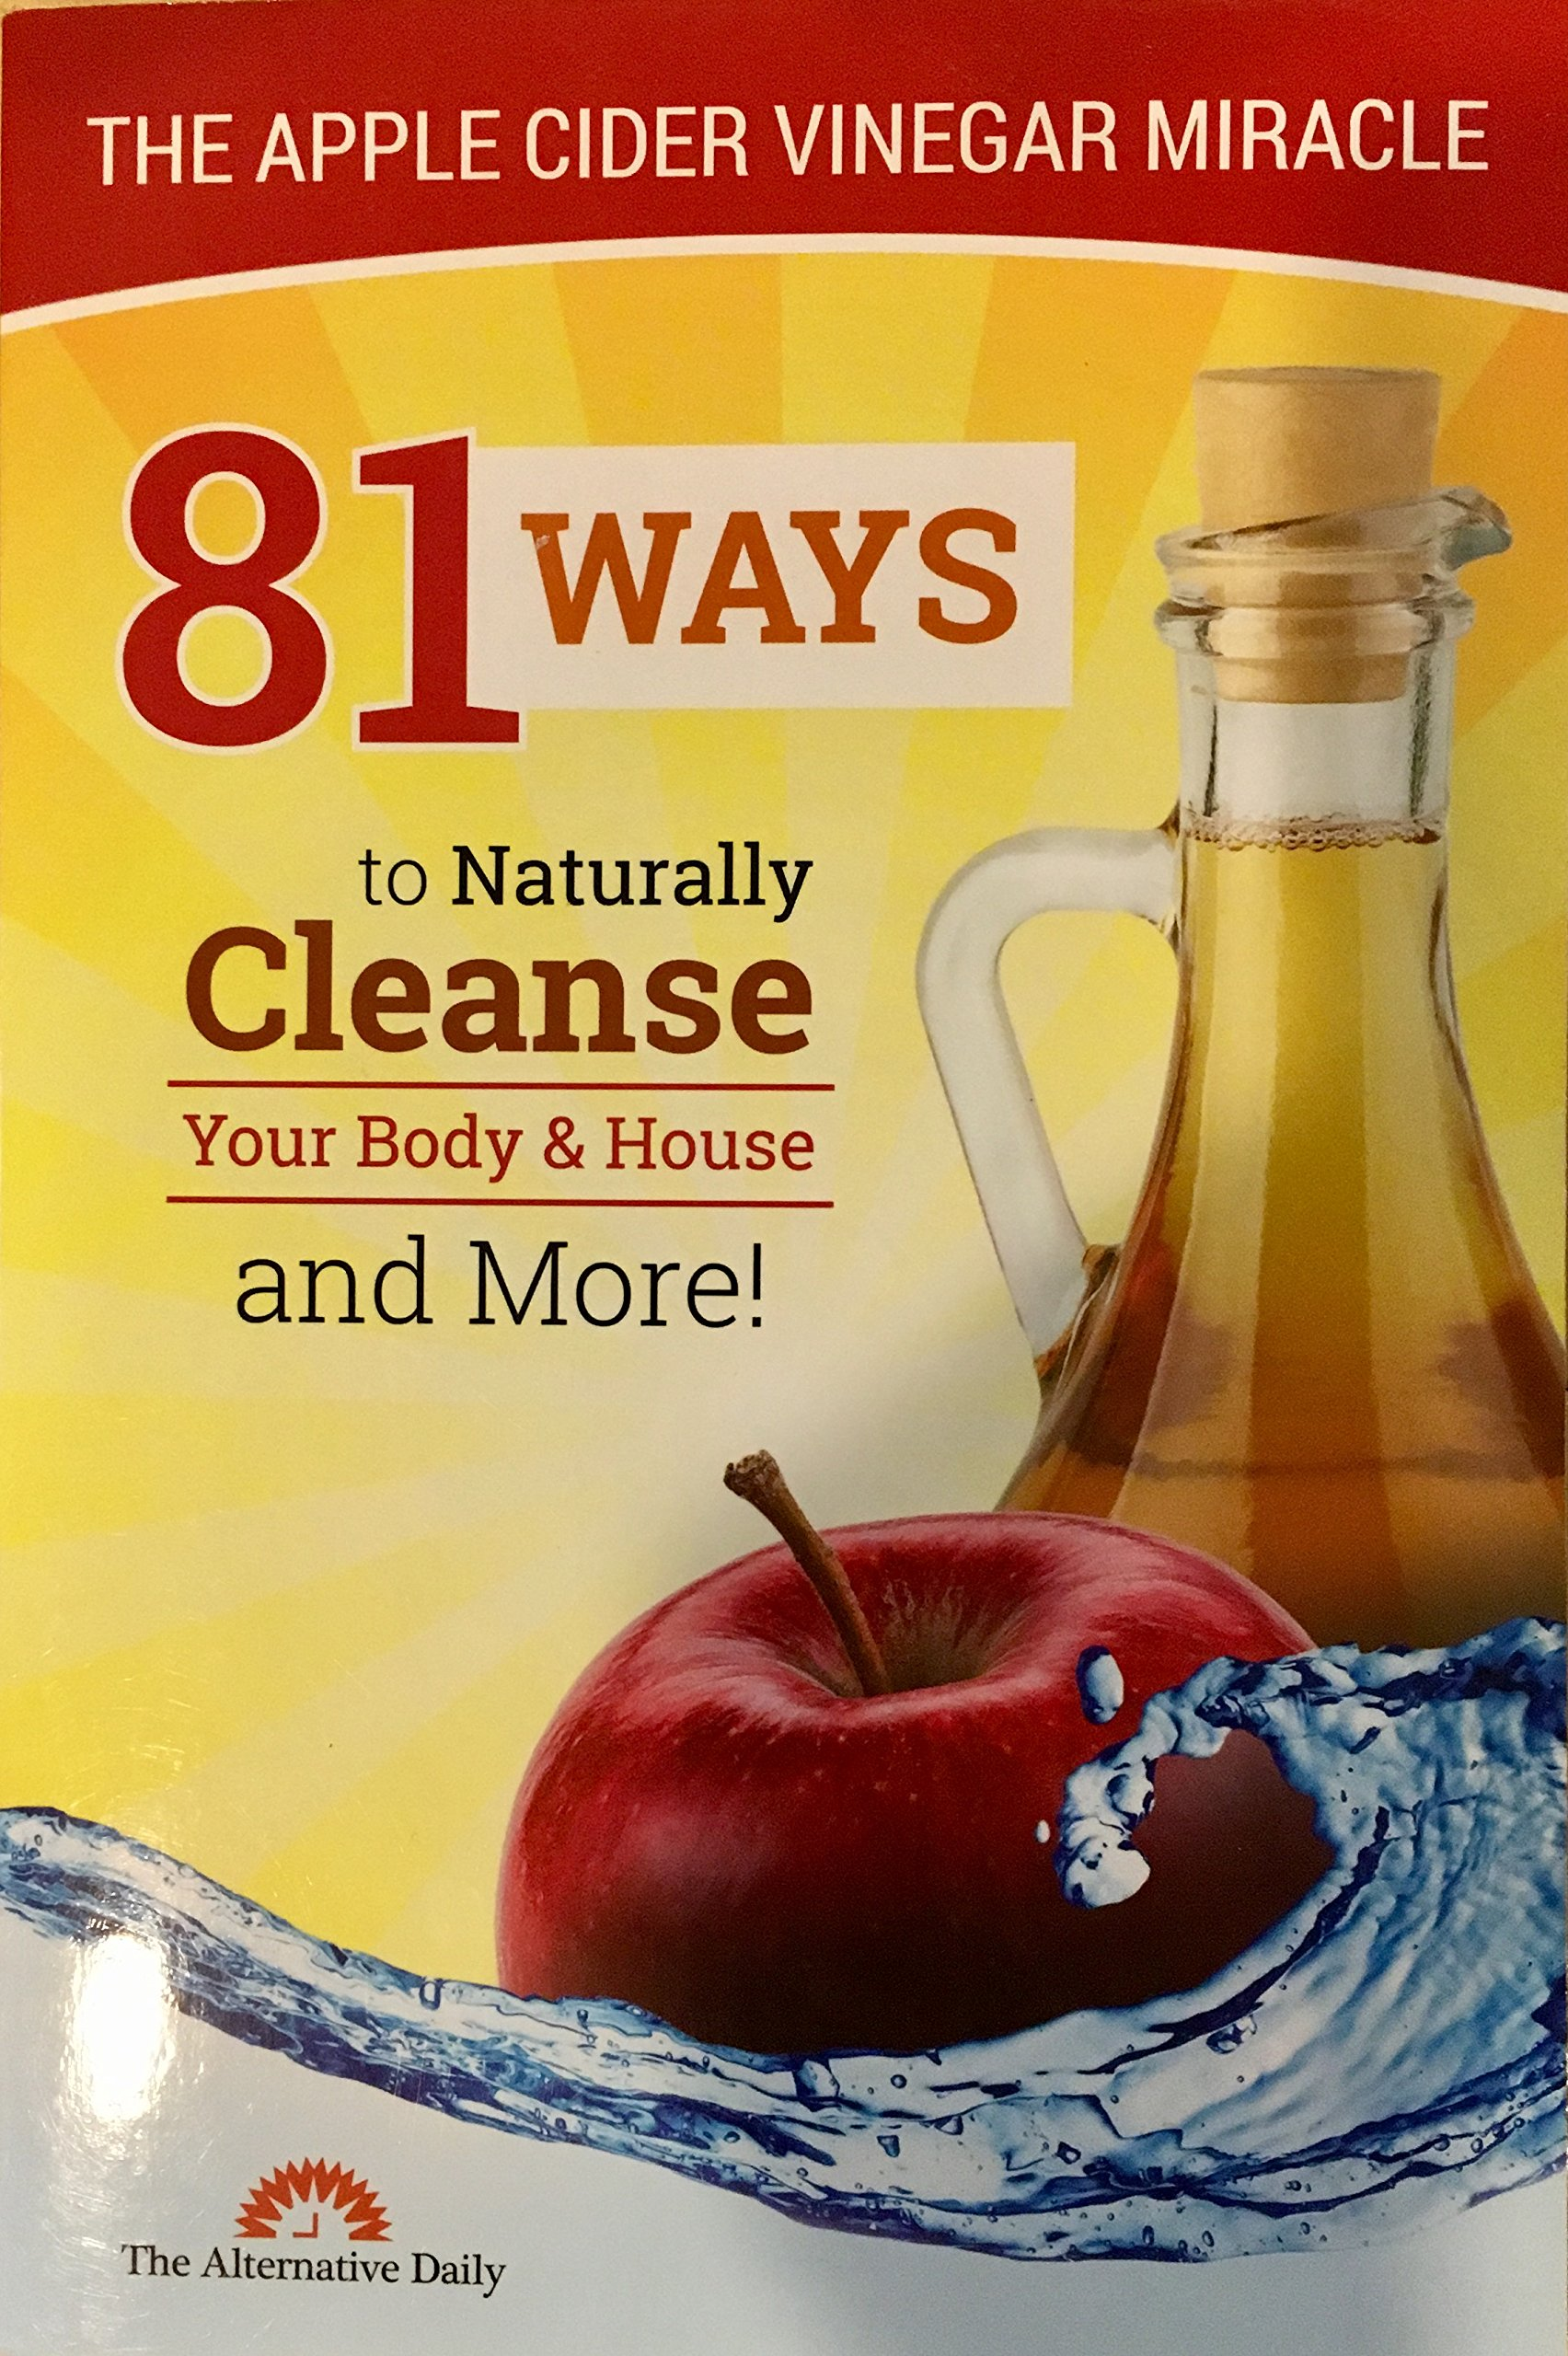 81 Ways To Naturally Cleanse Your Body & House And More! The